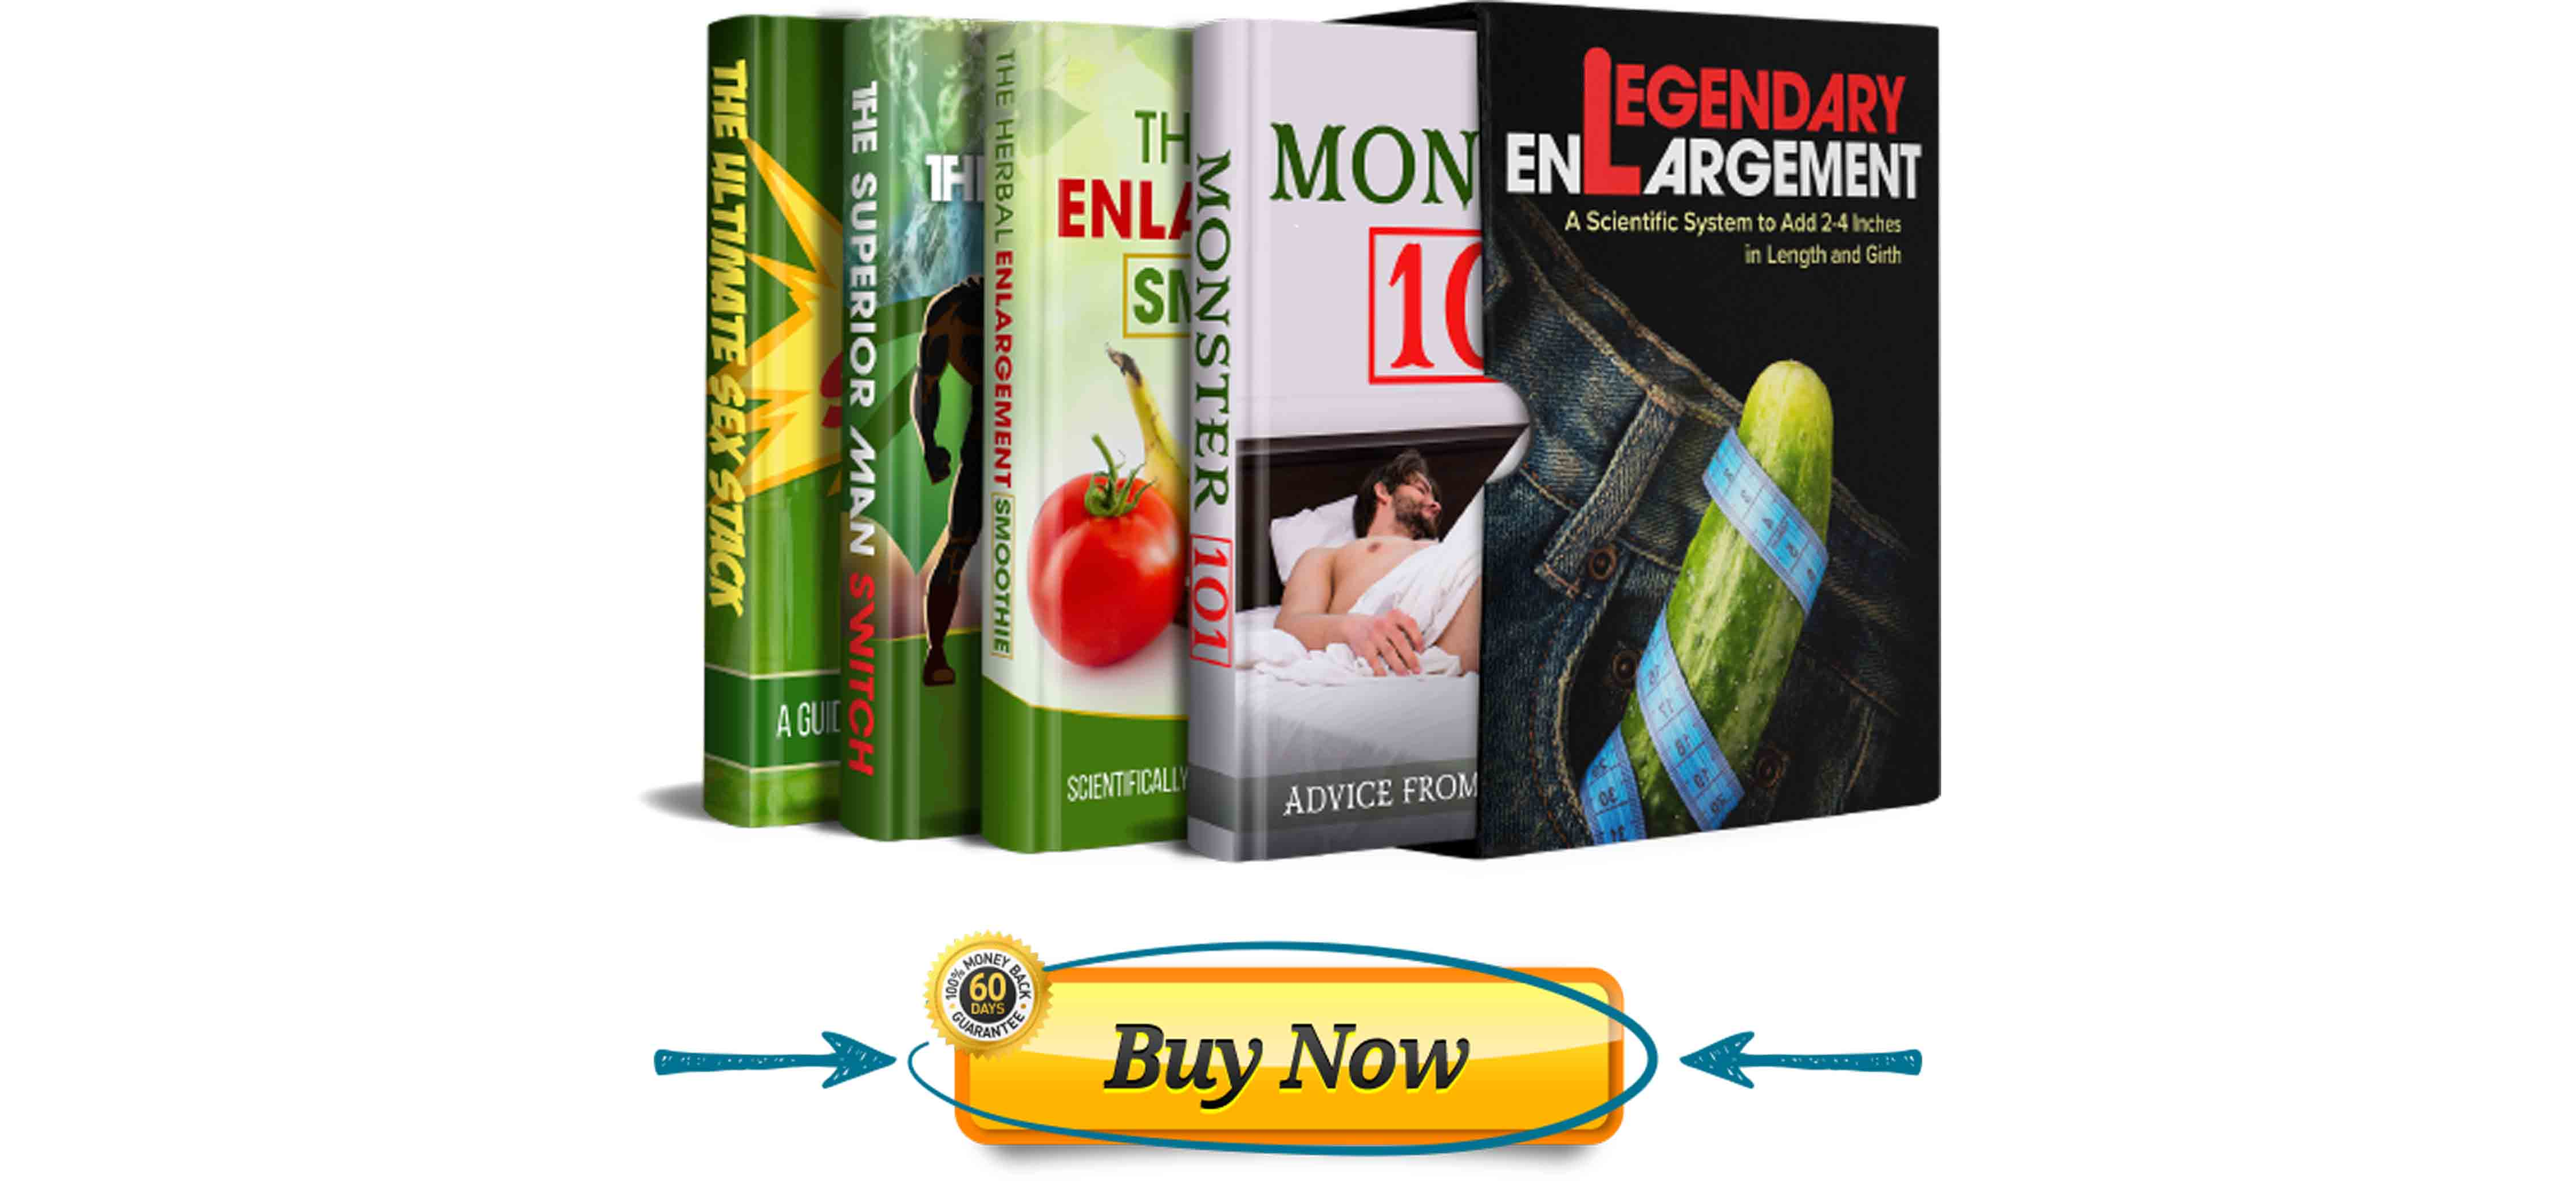 Legendary Enlargement Download